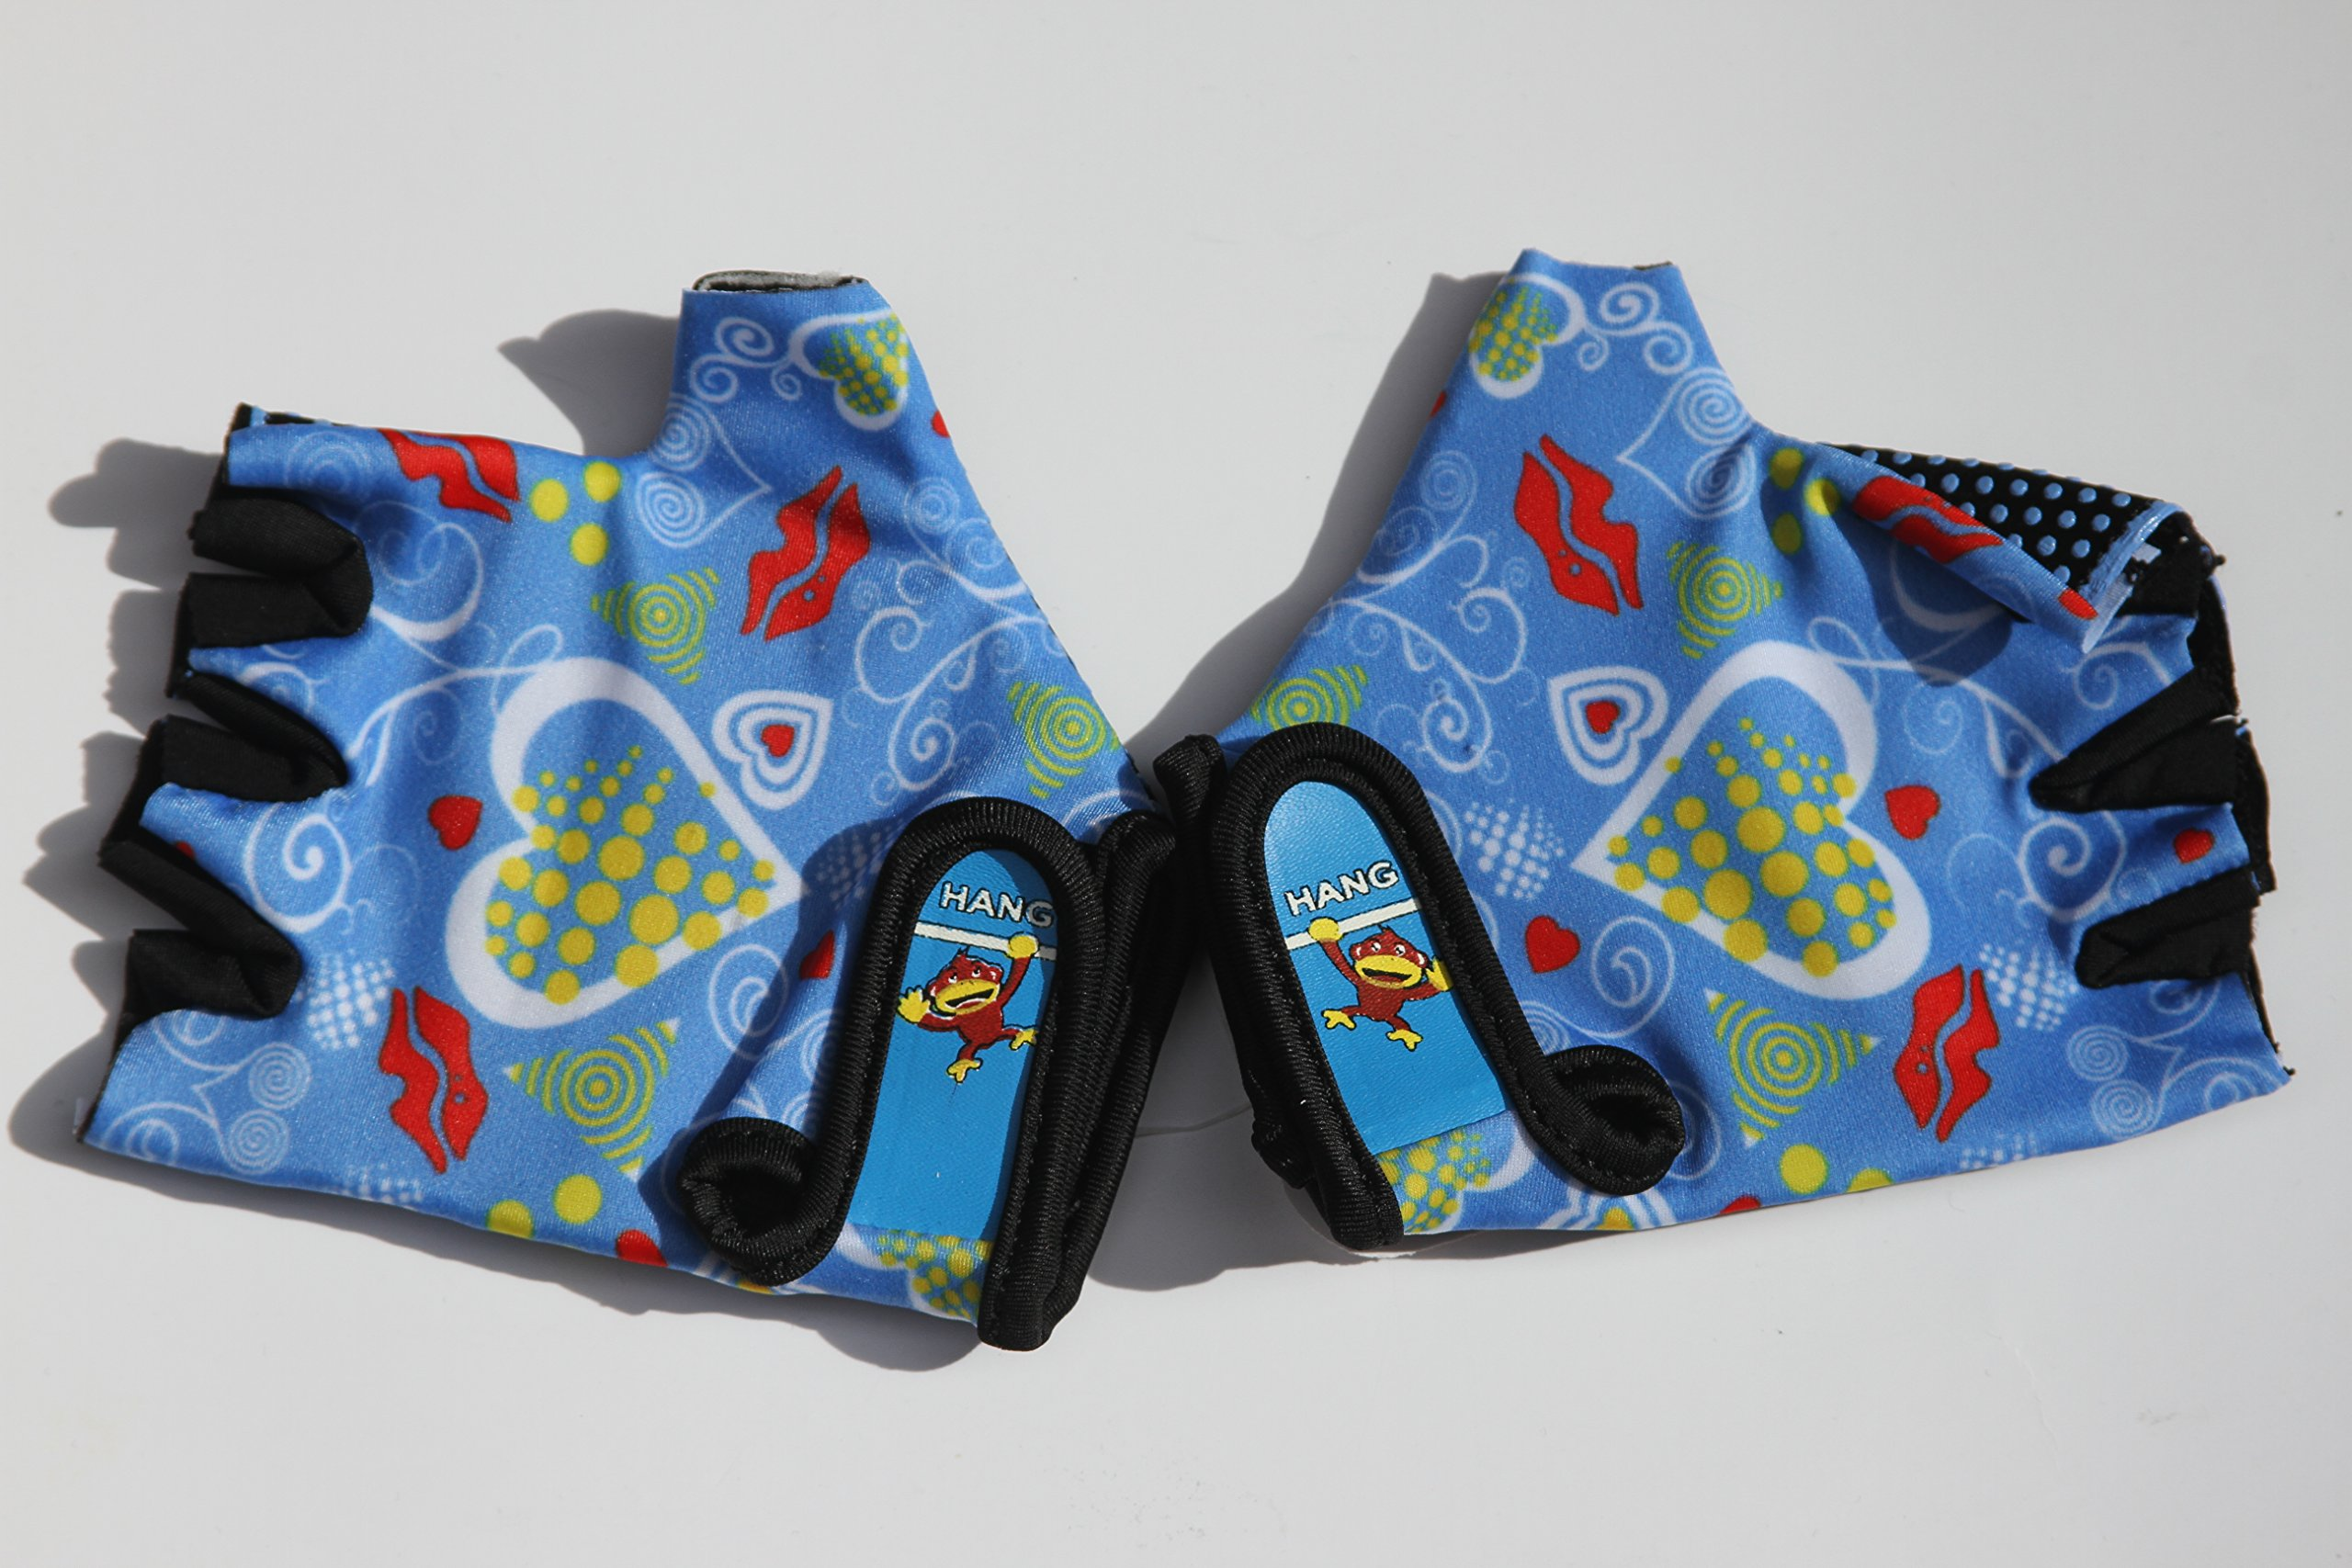 HANG Monkey Bars gloves With Grip Control (Blue) For Children 7 and 8 years old